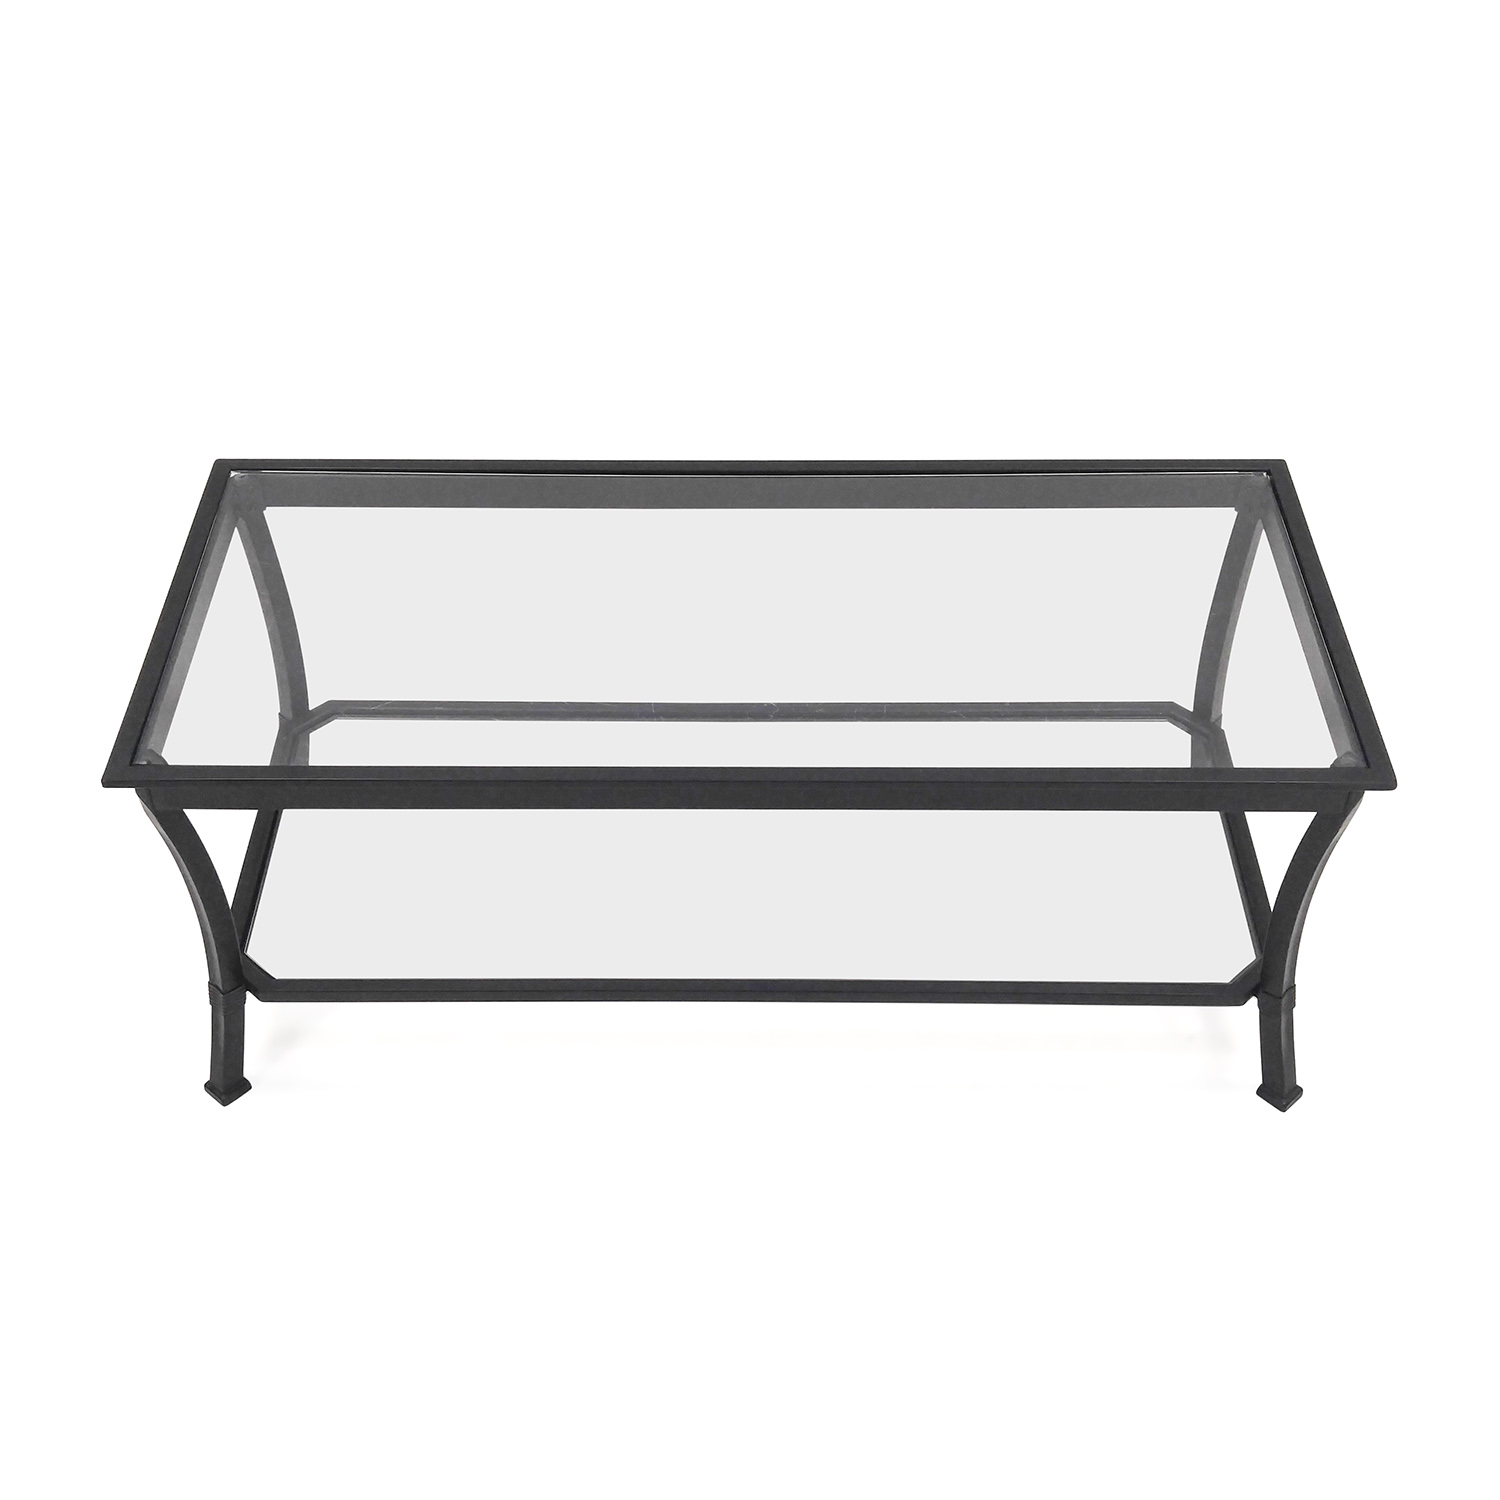 77% OFF CB2 CB2 Coffee Table Tables